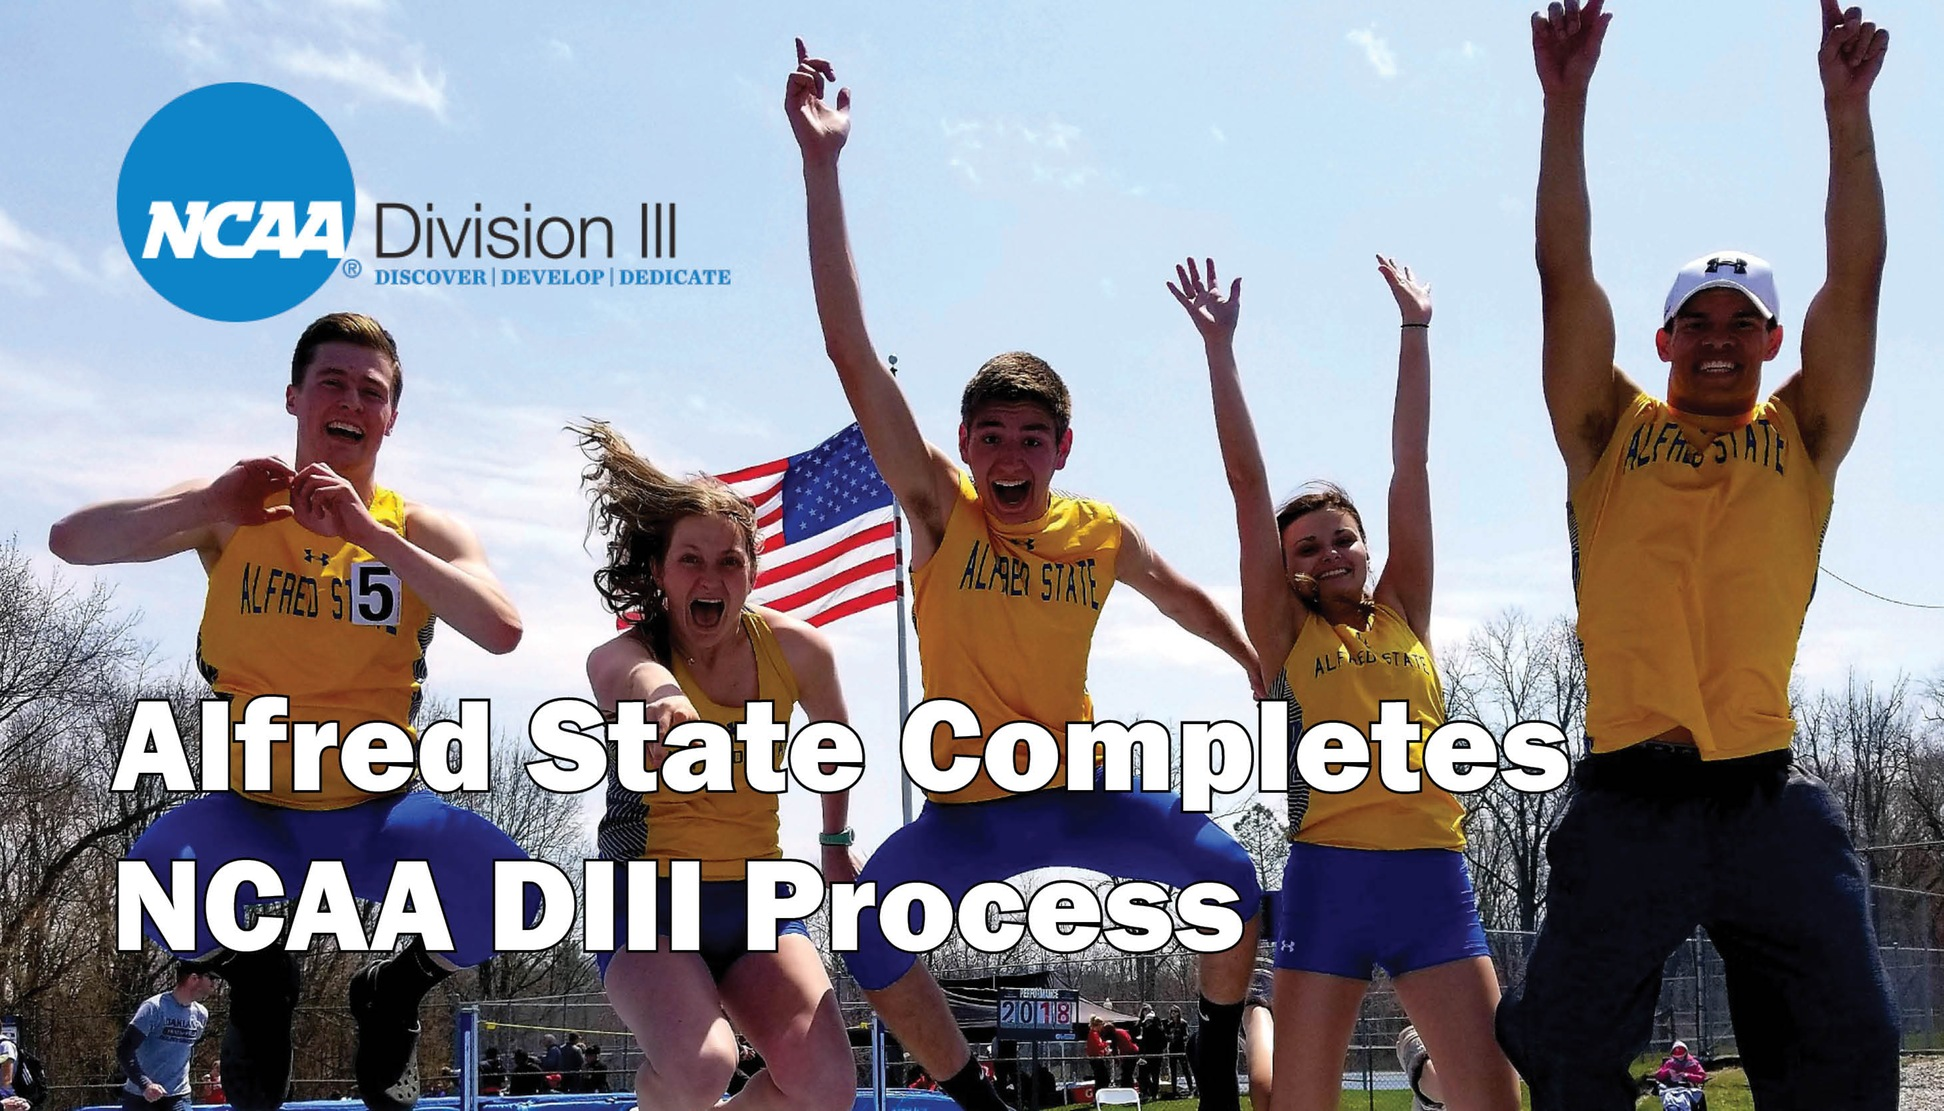 Alfred State completes NCAA DIII Process